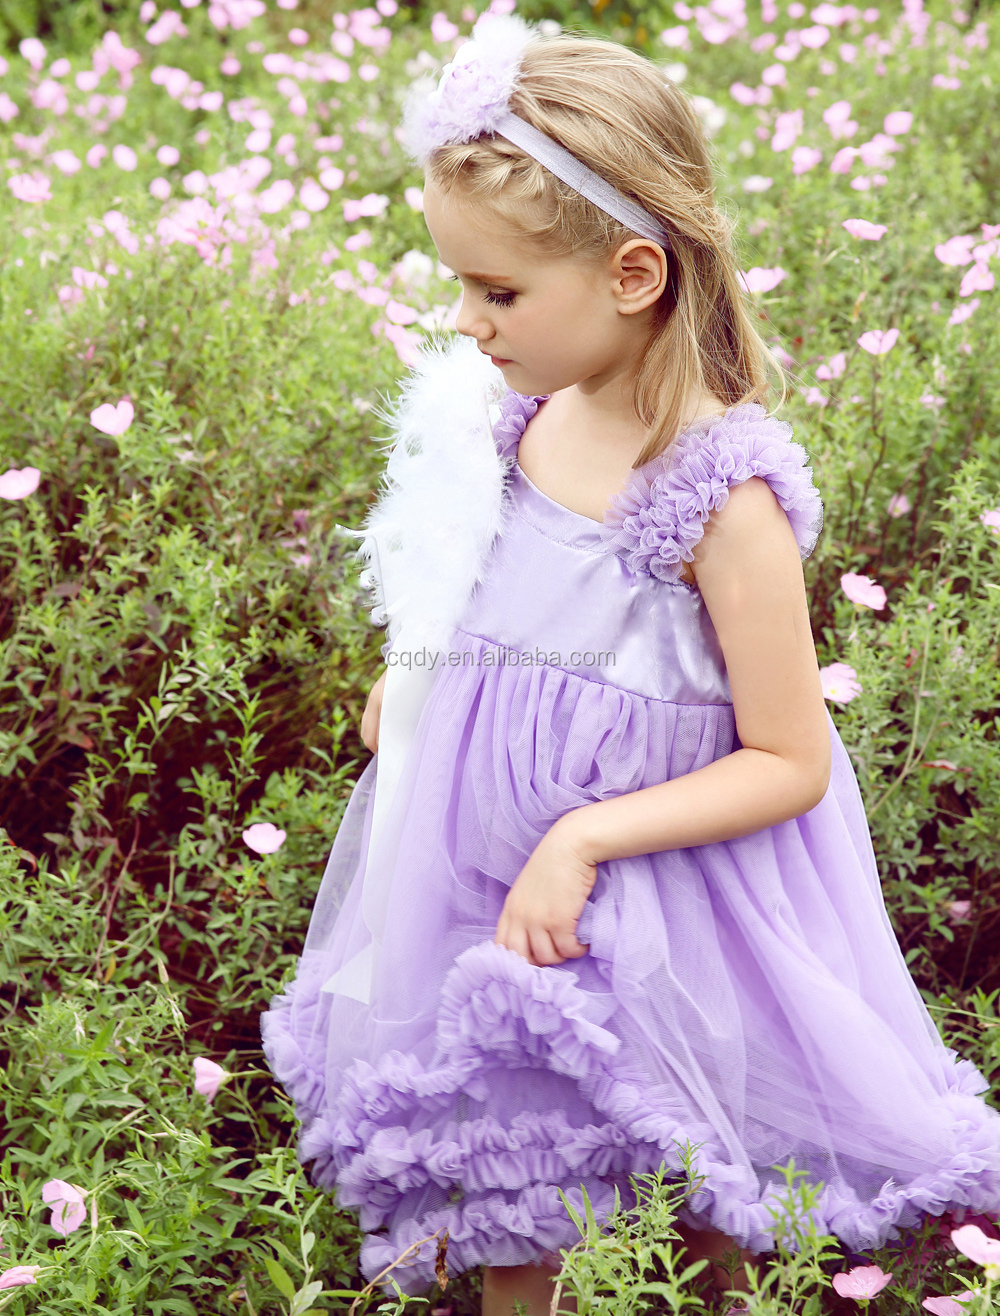 Luxury Lilac Feather Princess Flower Girls Dresses For Beach Wedding Party Kids Gown Barbie